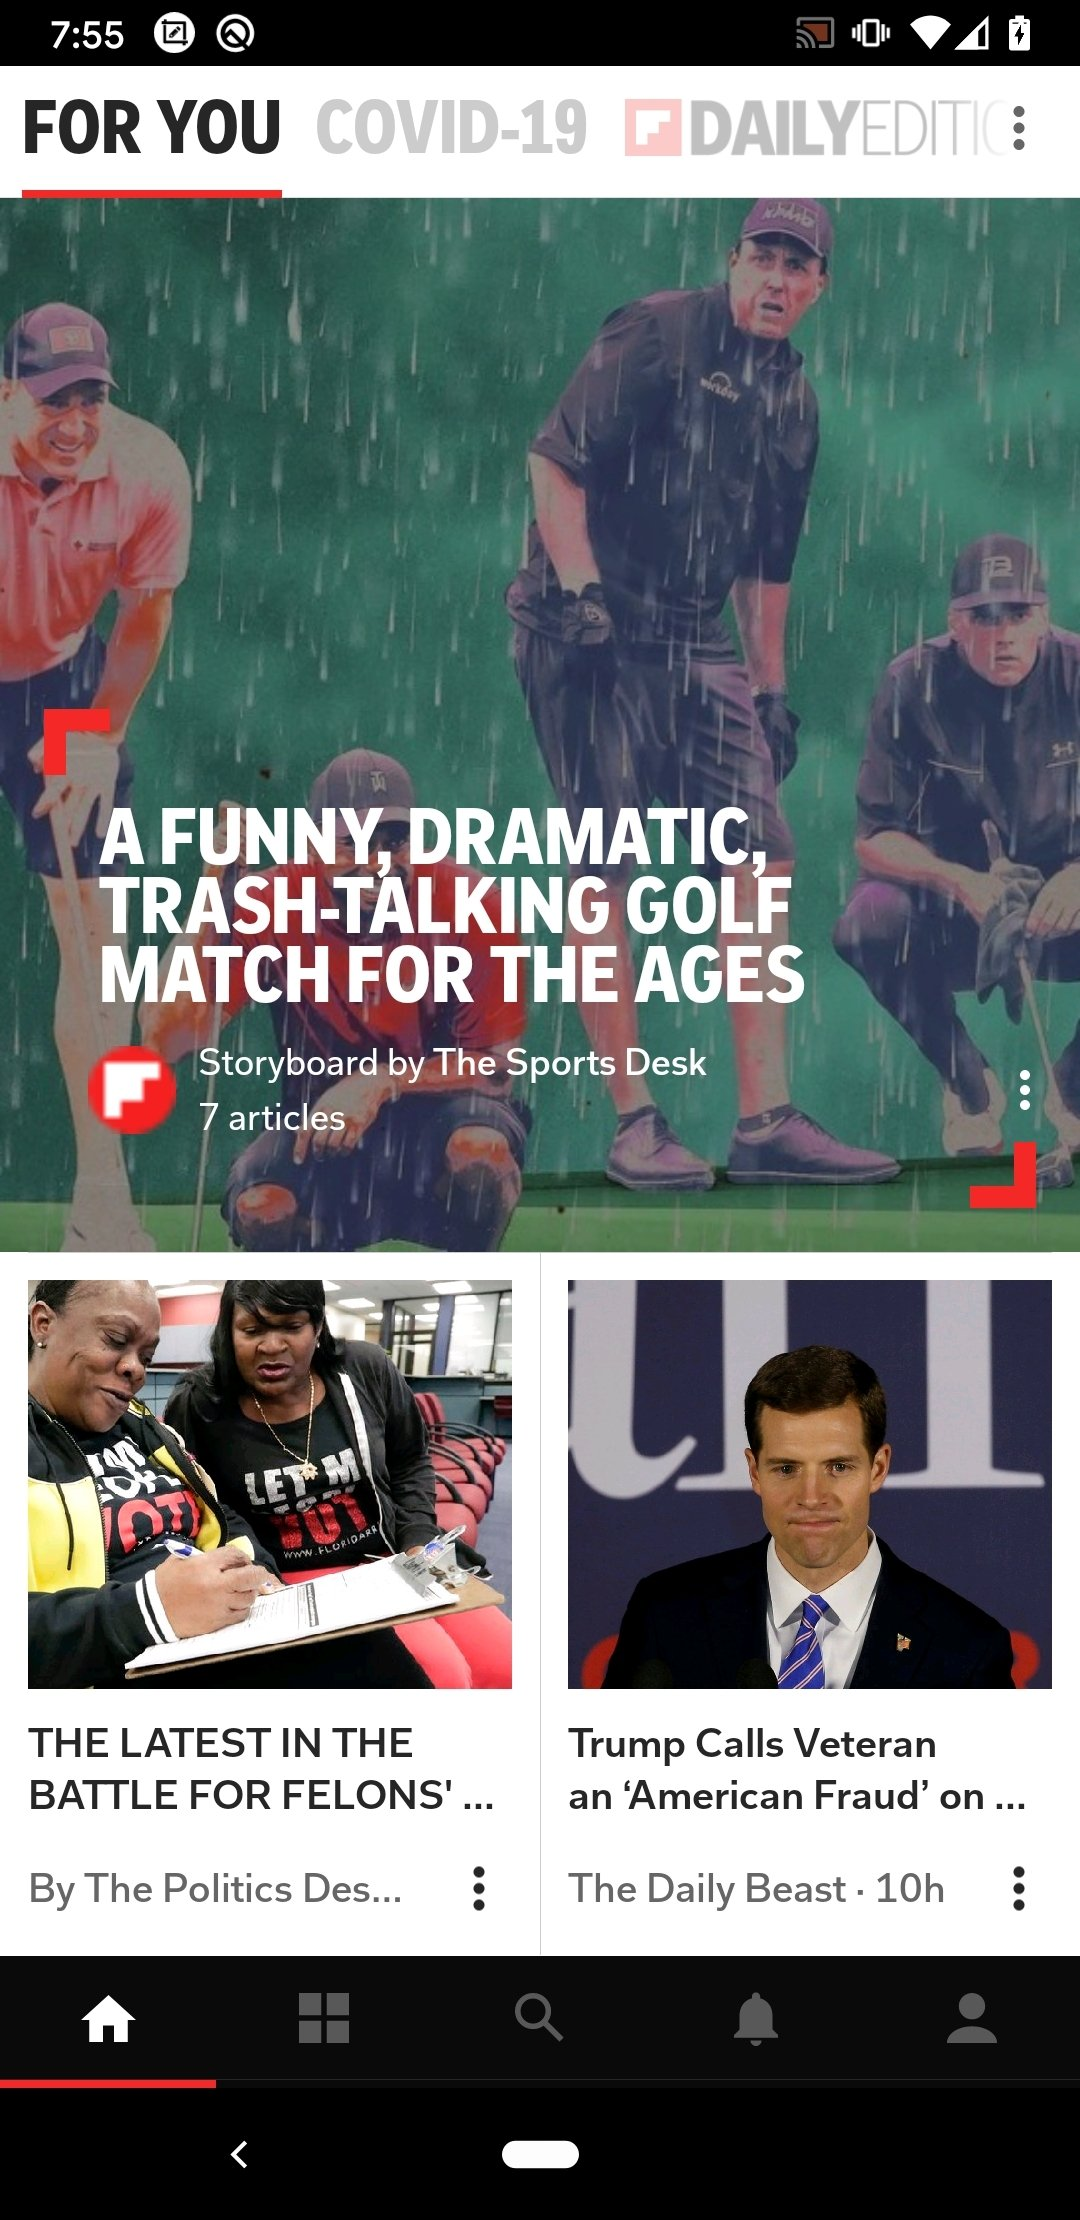 Flipboard Android image 5